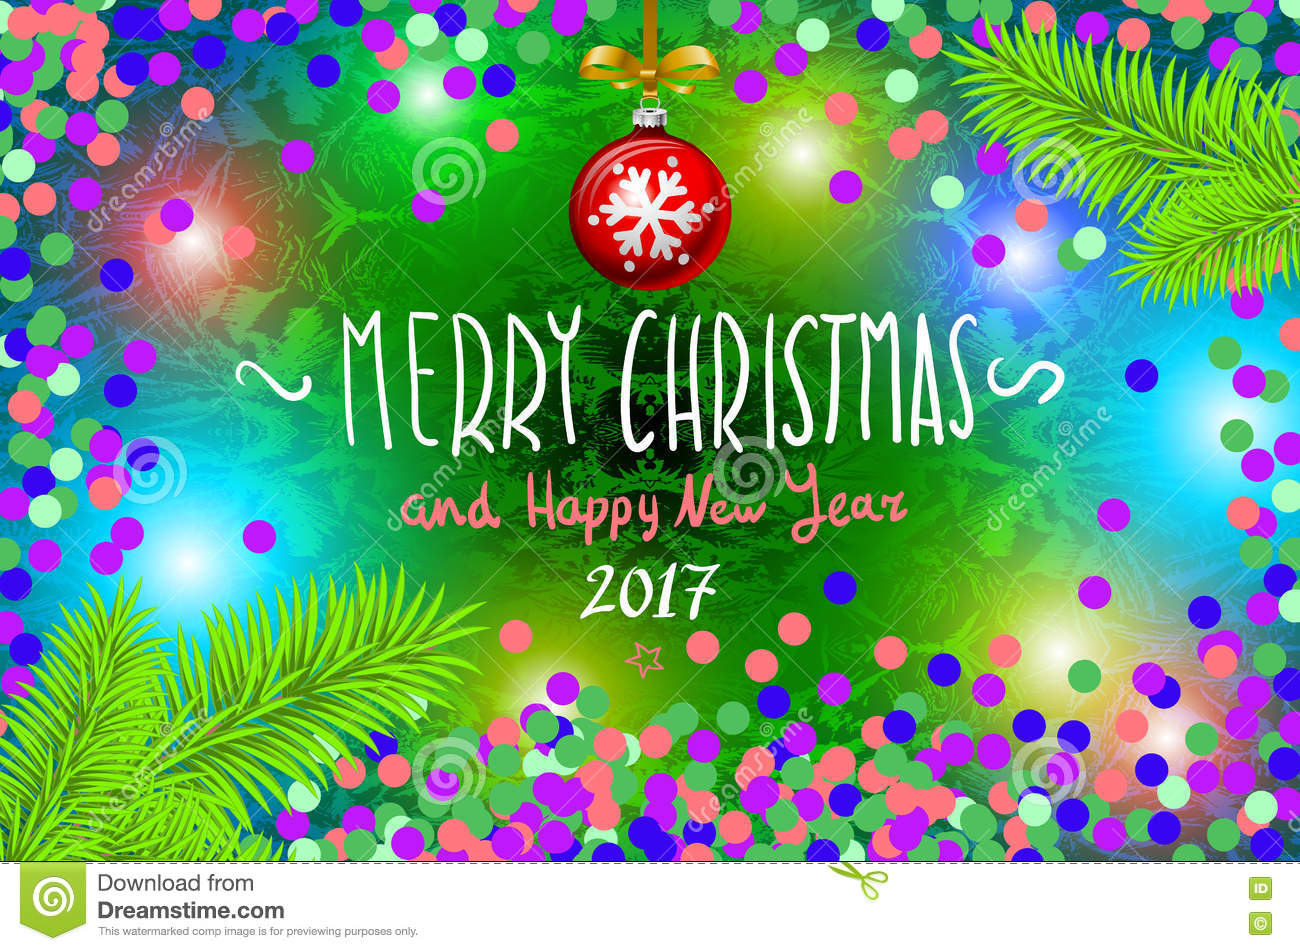 Glowing color christmas lights wreath for xmas holiday greeting glowing color christmas lights wreath for xmas holiday greeting cards design merry christmas and happy new year 2017 vector con light illustration kristyandbryce Gallery